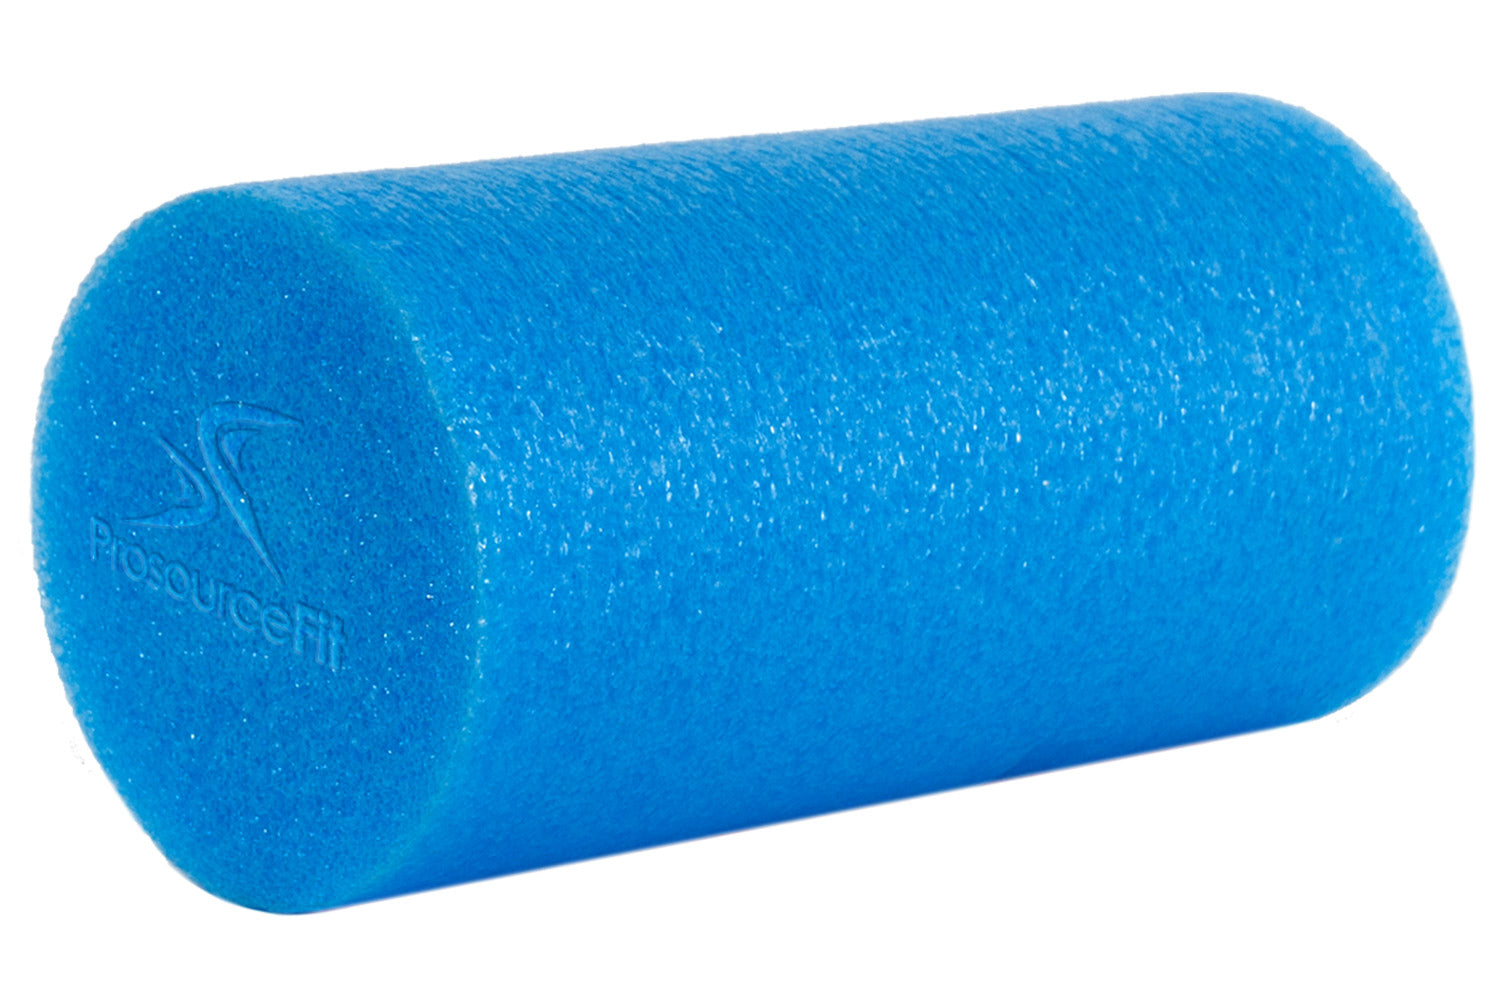 12x6 Blue Flex Foam Roller